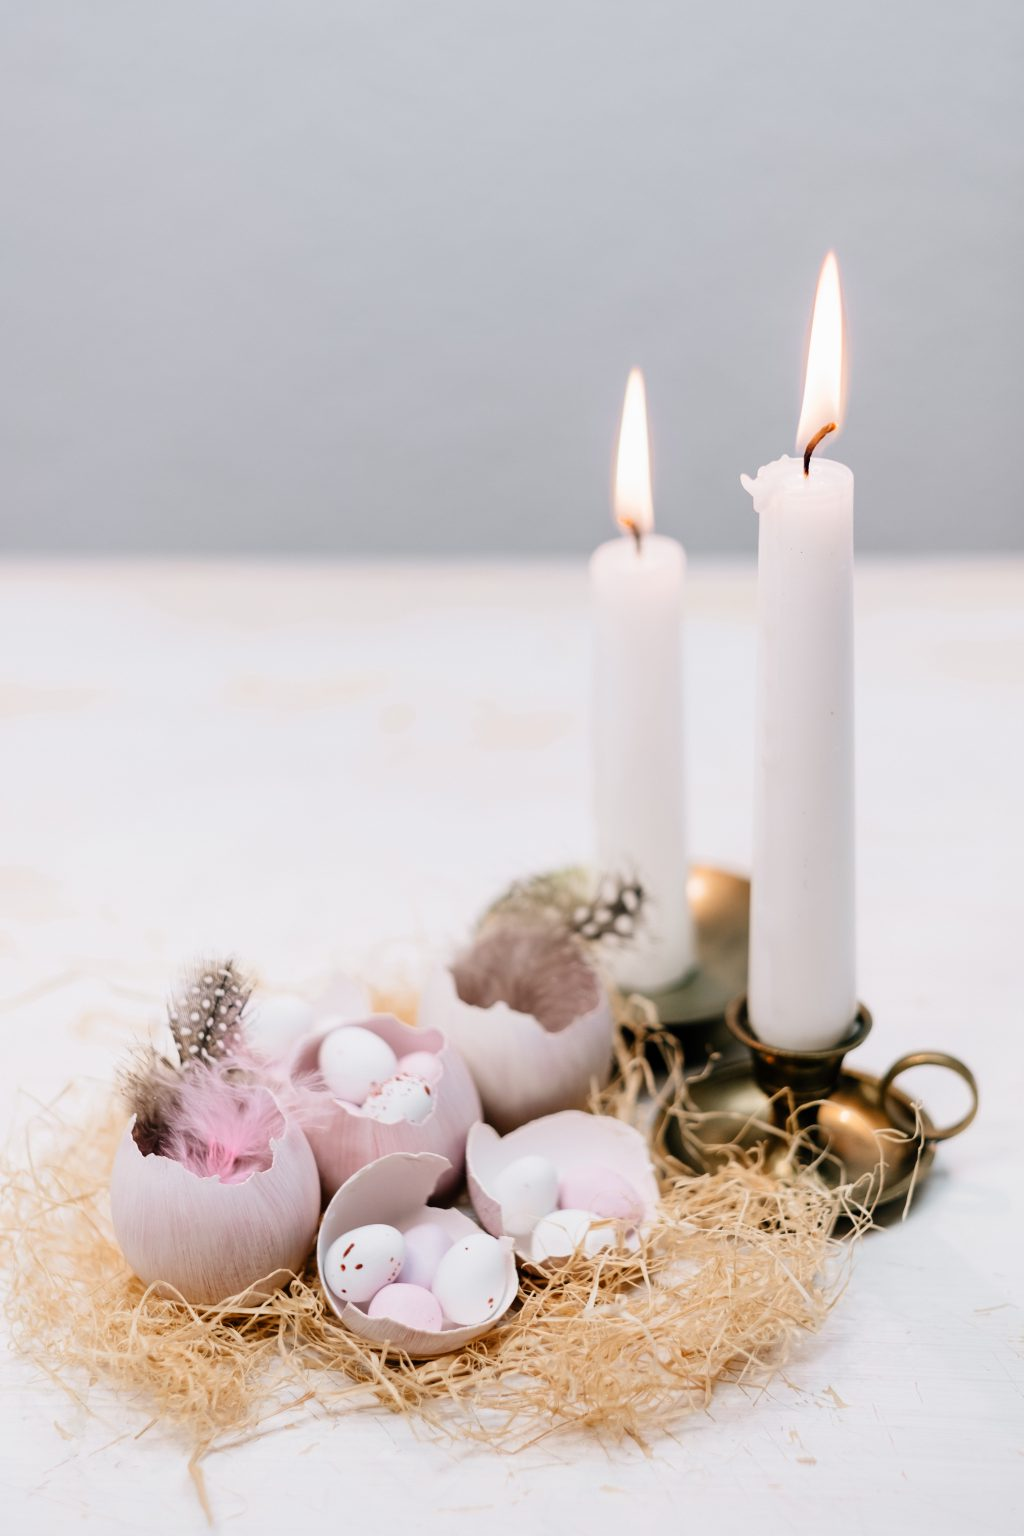 Egg shells Easter table decoration with candles 2 - free stock photo